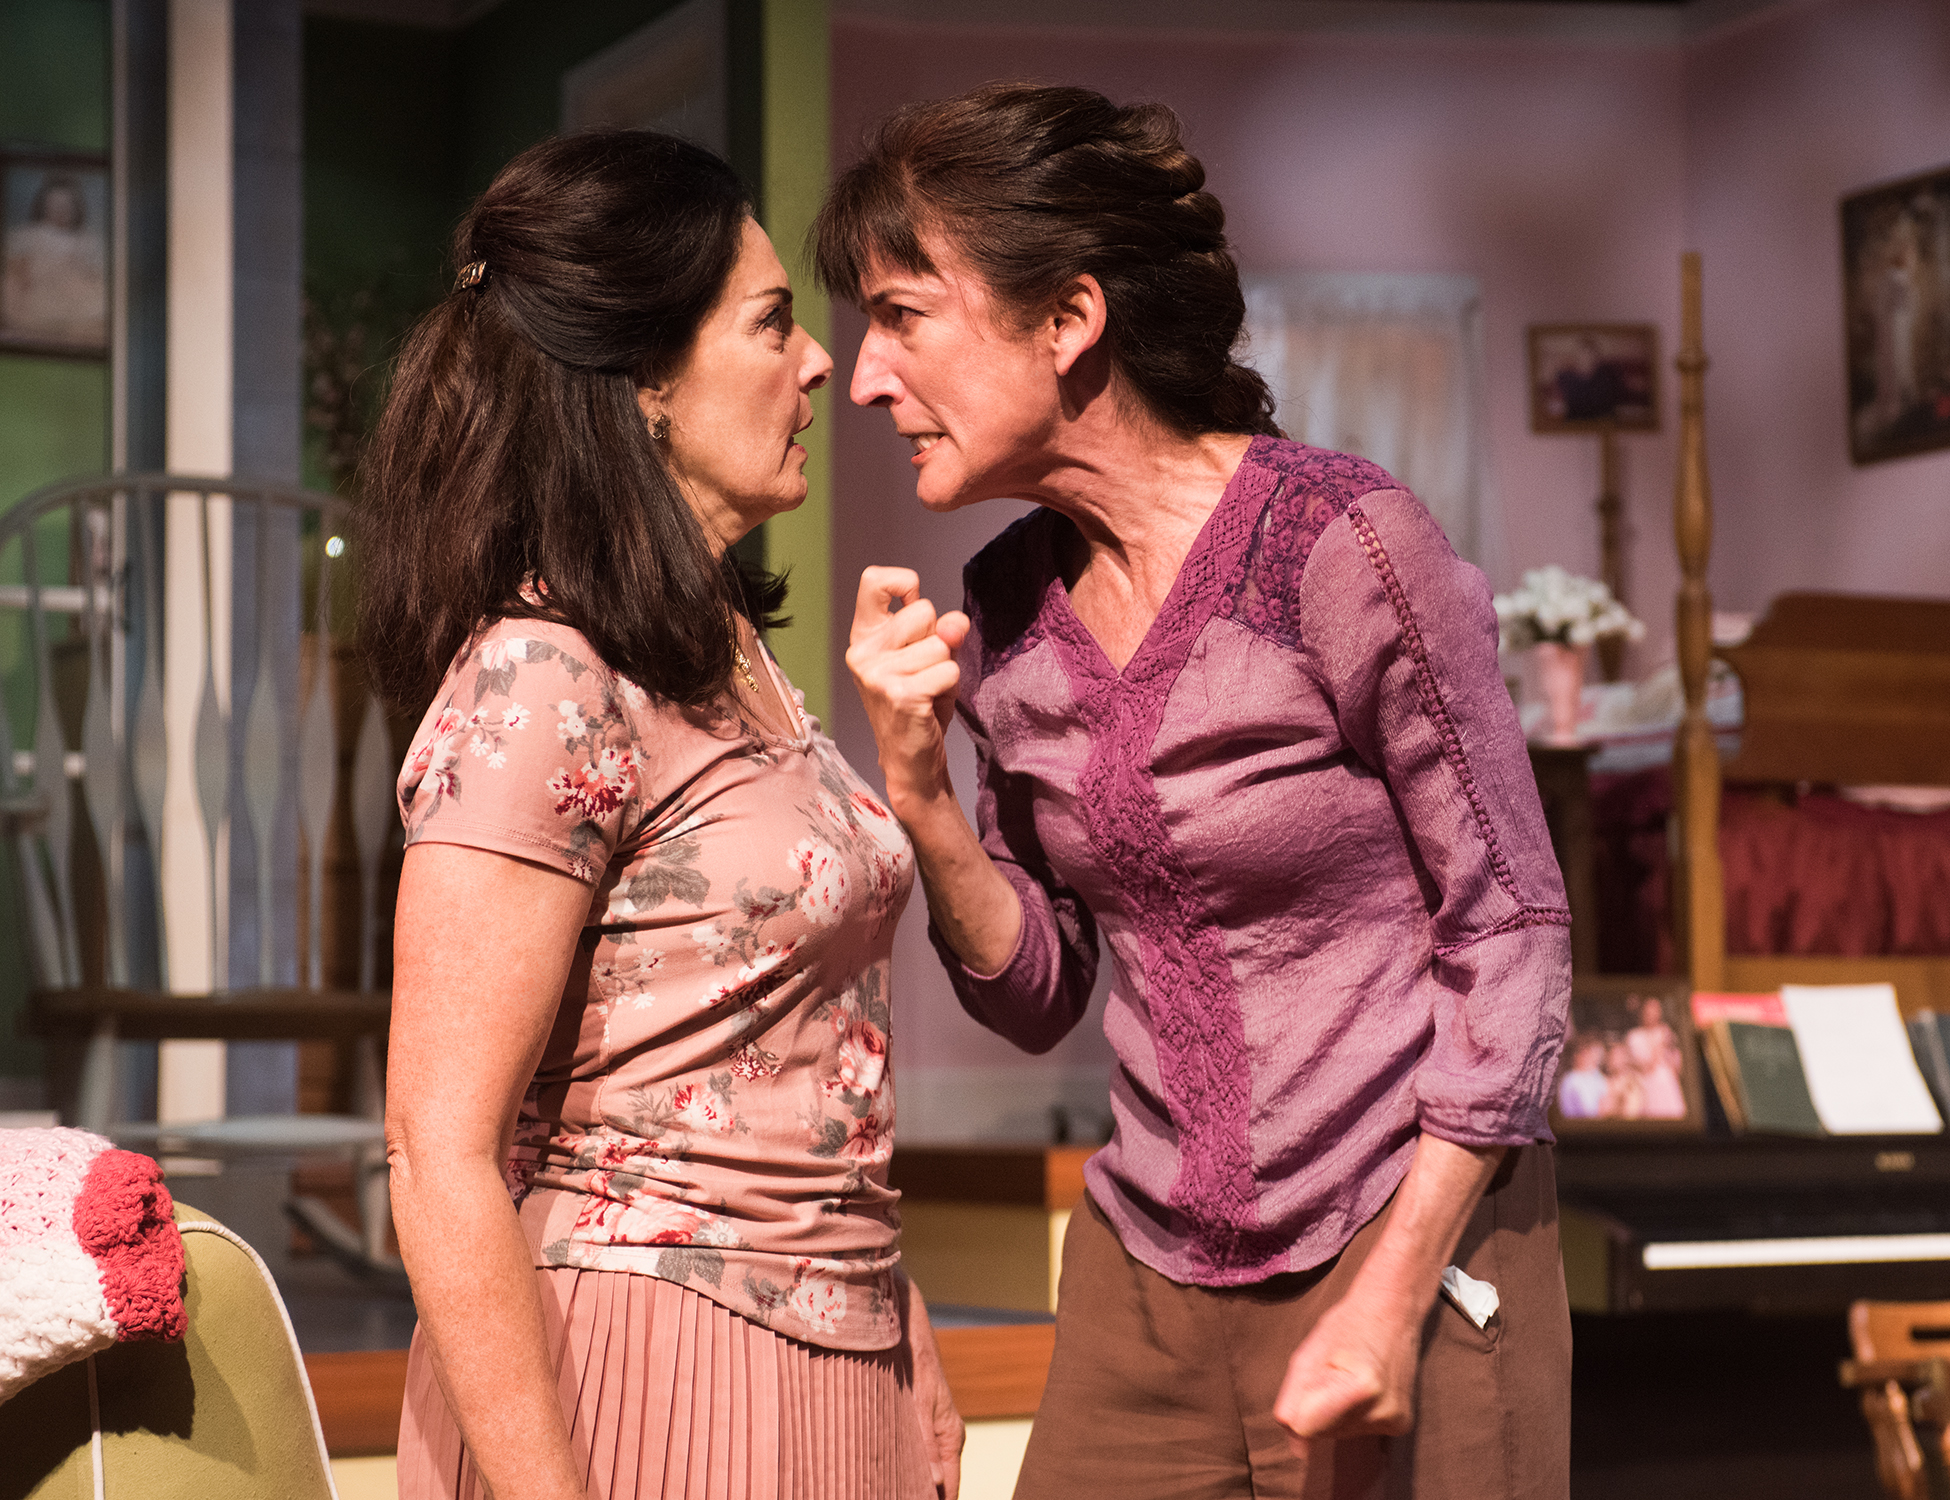 Pictured L to R: Sisters Rachel (Cheryl Smith)and Abigail (Alison Whismore) confront each other over their pasts. Photo by Lois Tema.